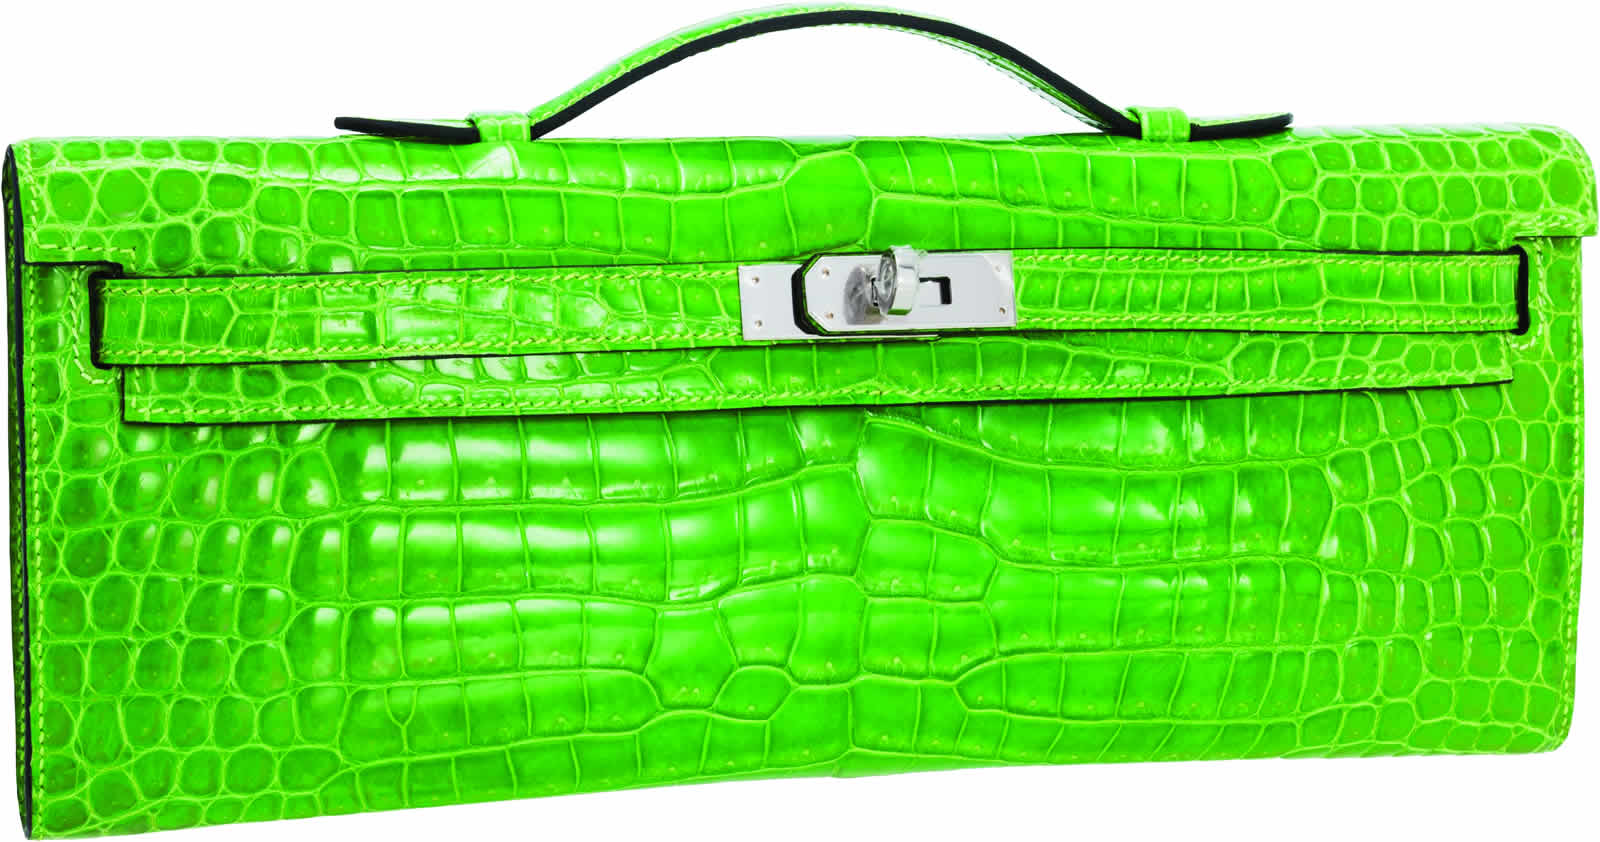 H-Hermes Shiny Kiwi Porosus Crocodile Kelly Cut Clutch Bag with Palladium Hardware